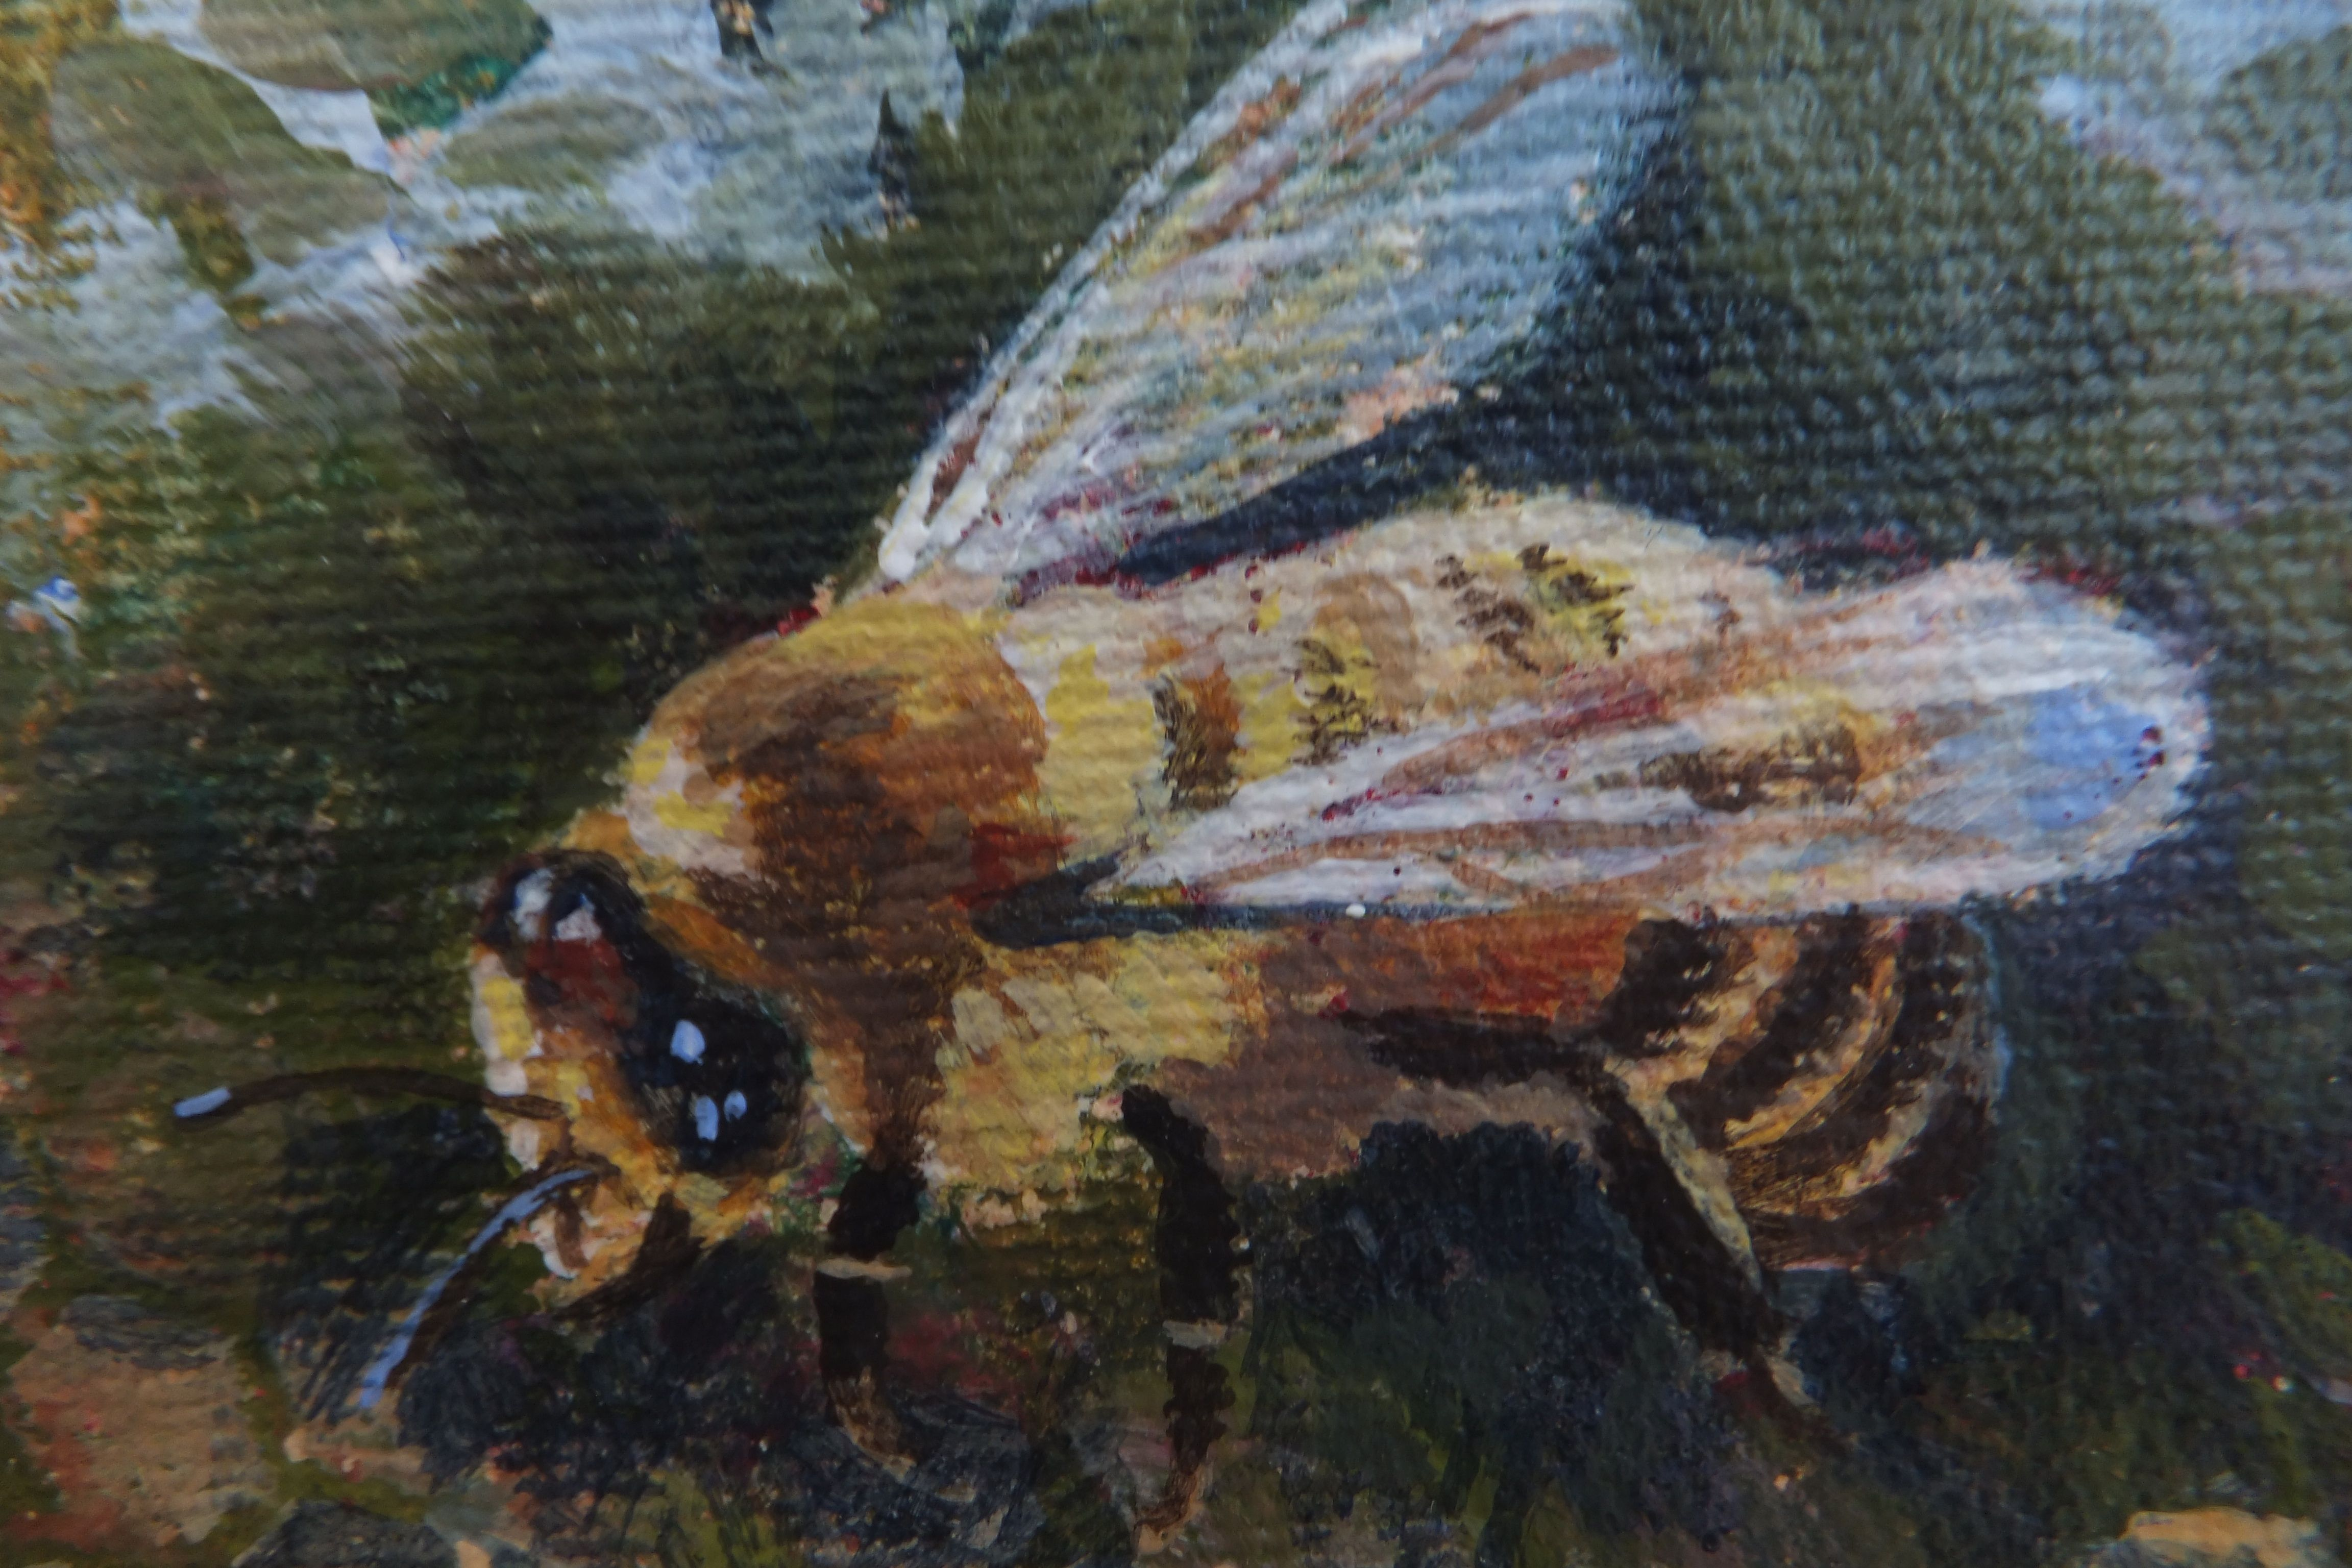 Bee in acrylic by friend Wendy Orr for the bee show at Gallery 96 in Stratford.